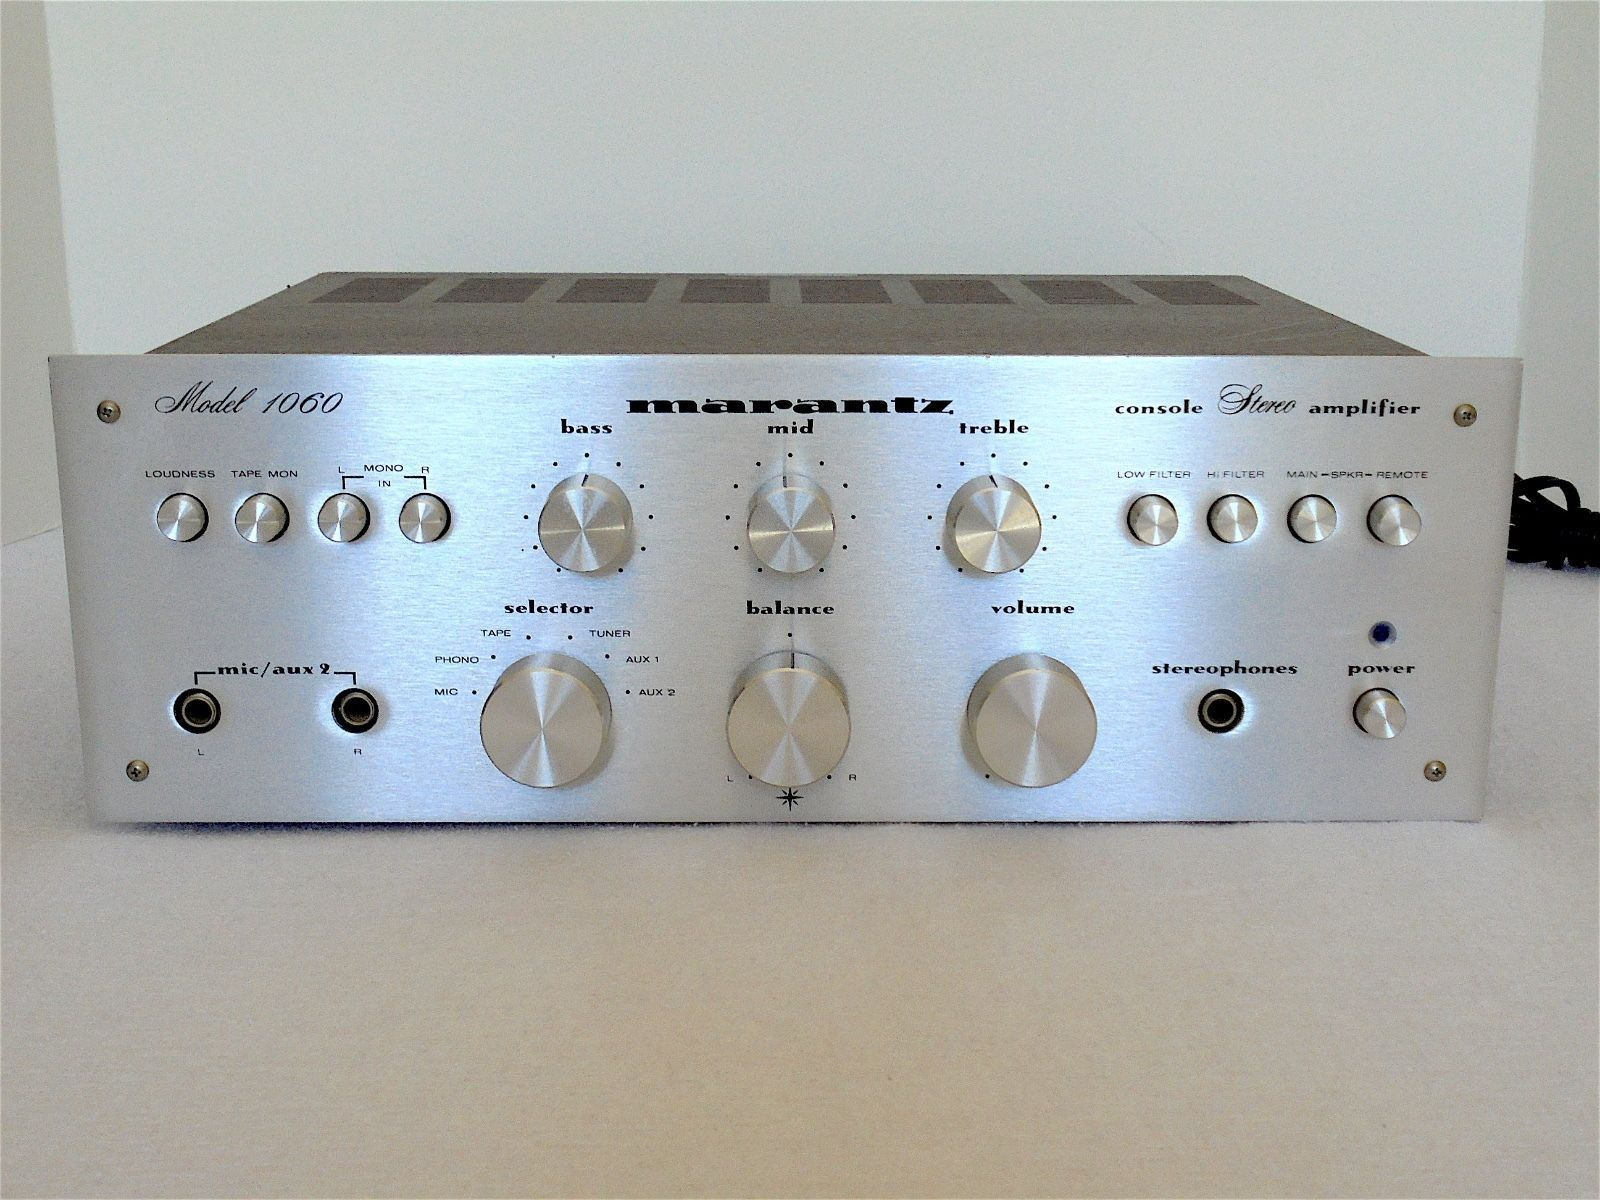 Vintage Marantz 1060 Stereo Amplifier Serviced Super Clean Ebay